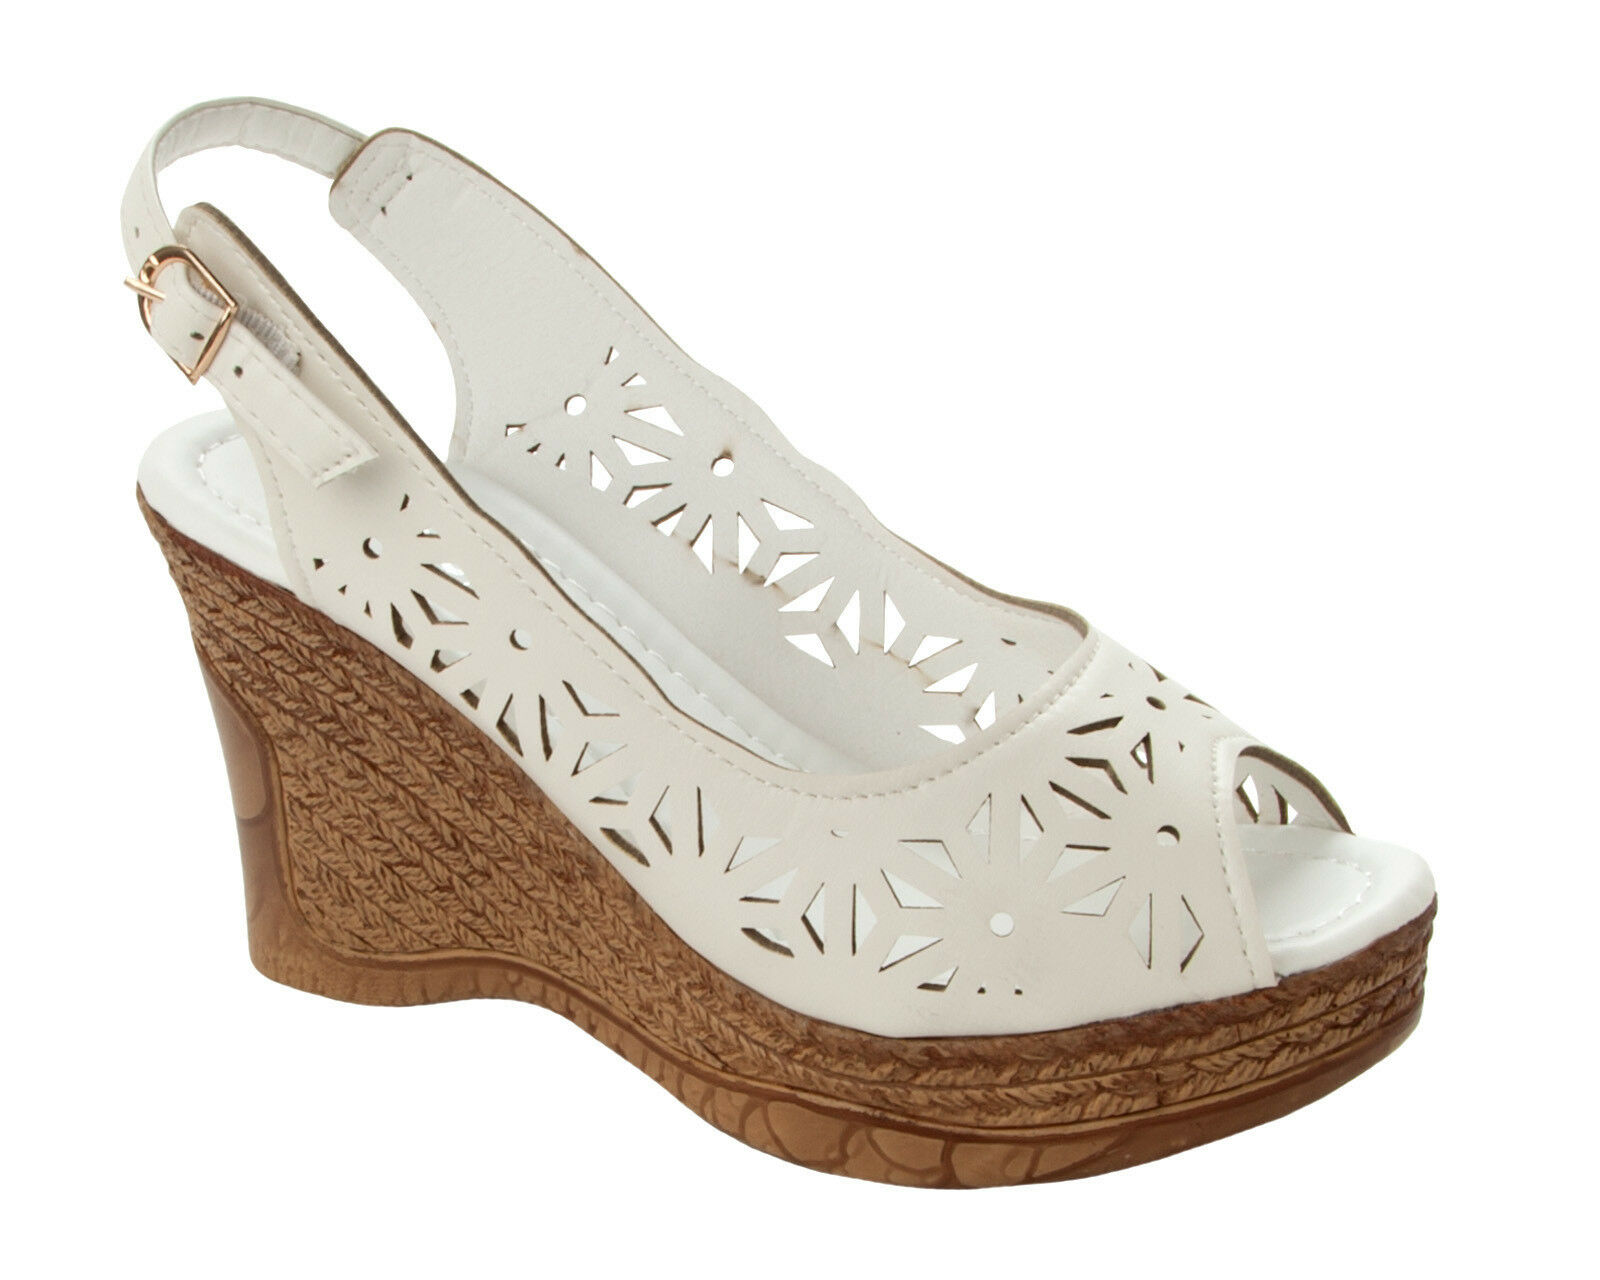 WOMENS WHITE CUT OUT ESPADRILLES SUMMER UK WEDGE SANDALS SHOES LADIES UK SUMMER SIZE 3-8 ddcaa4